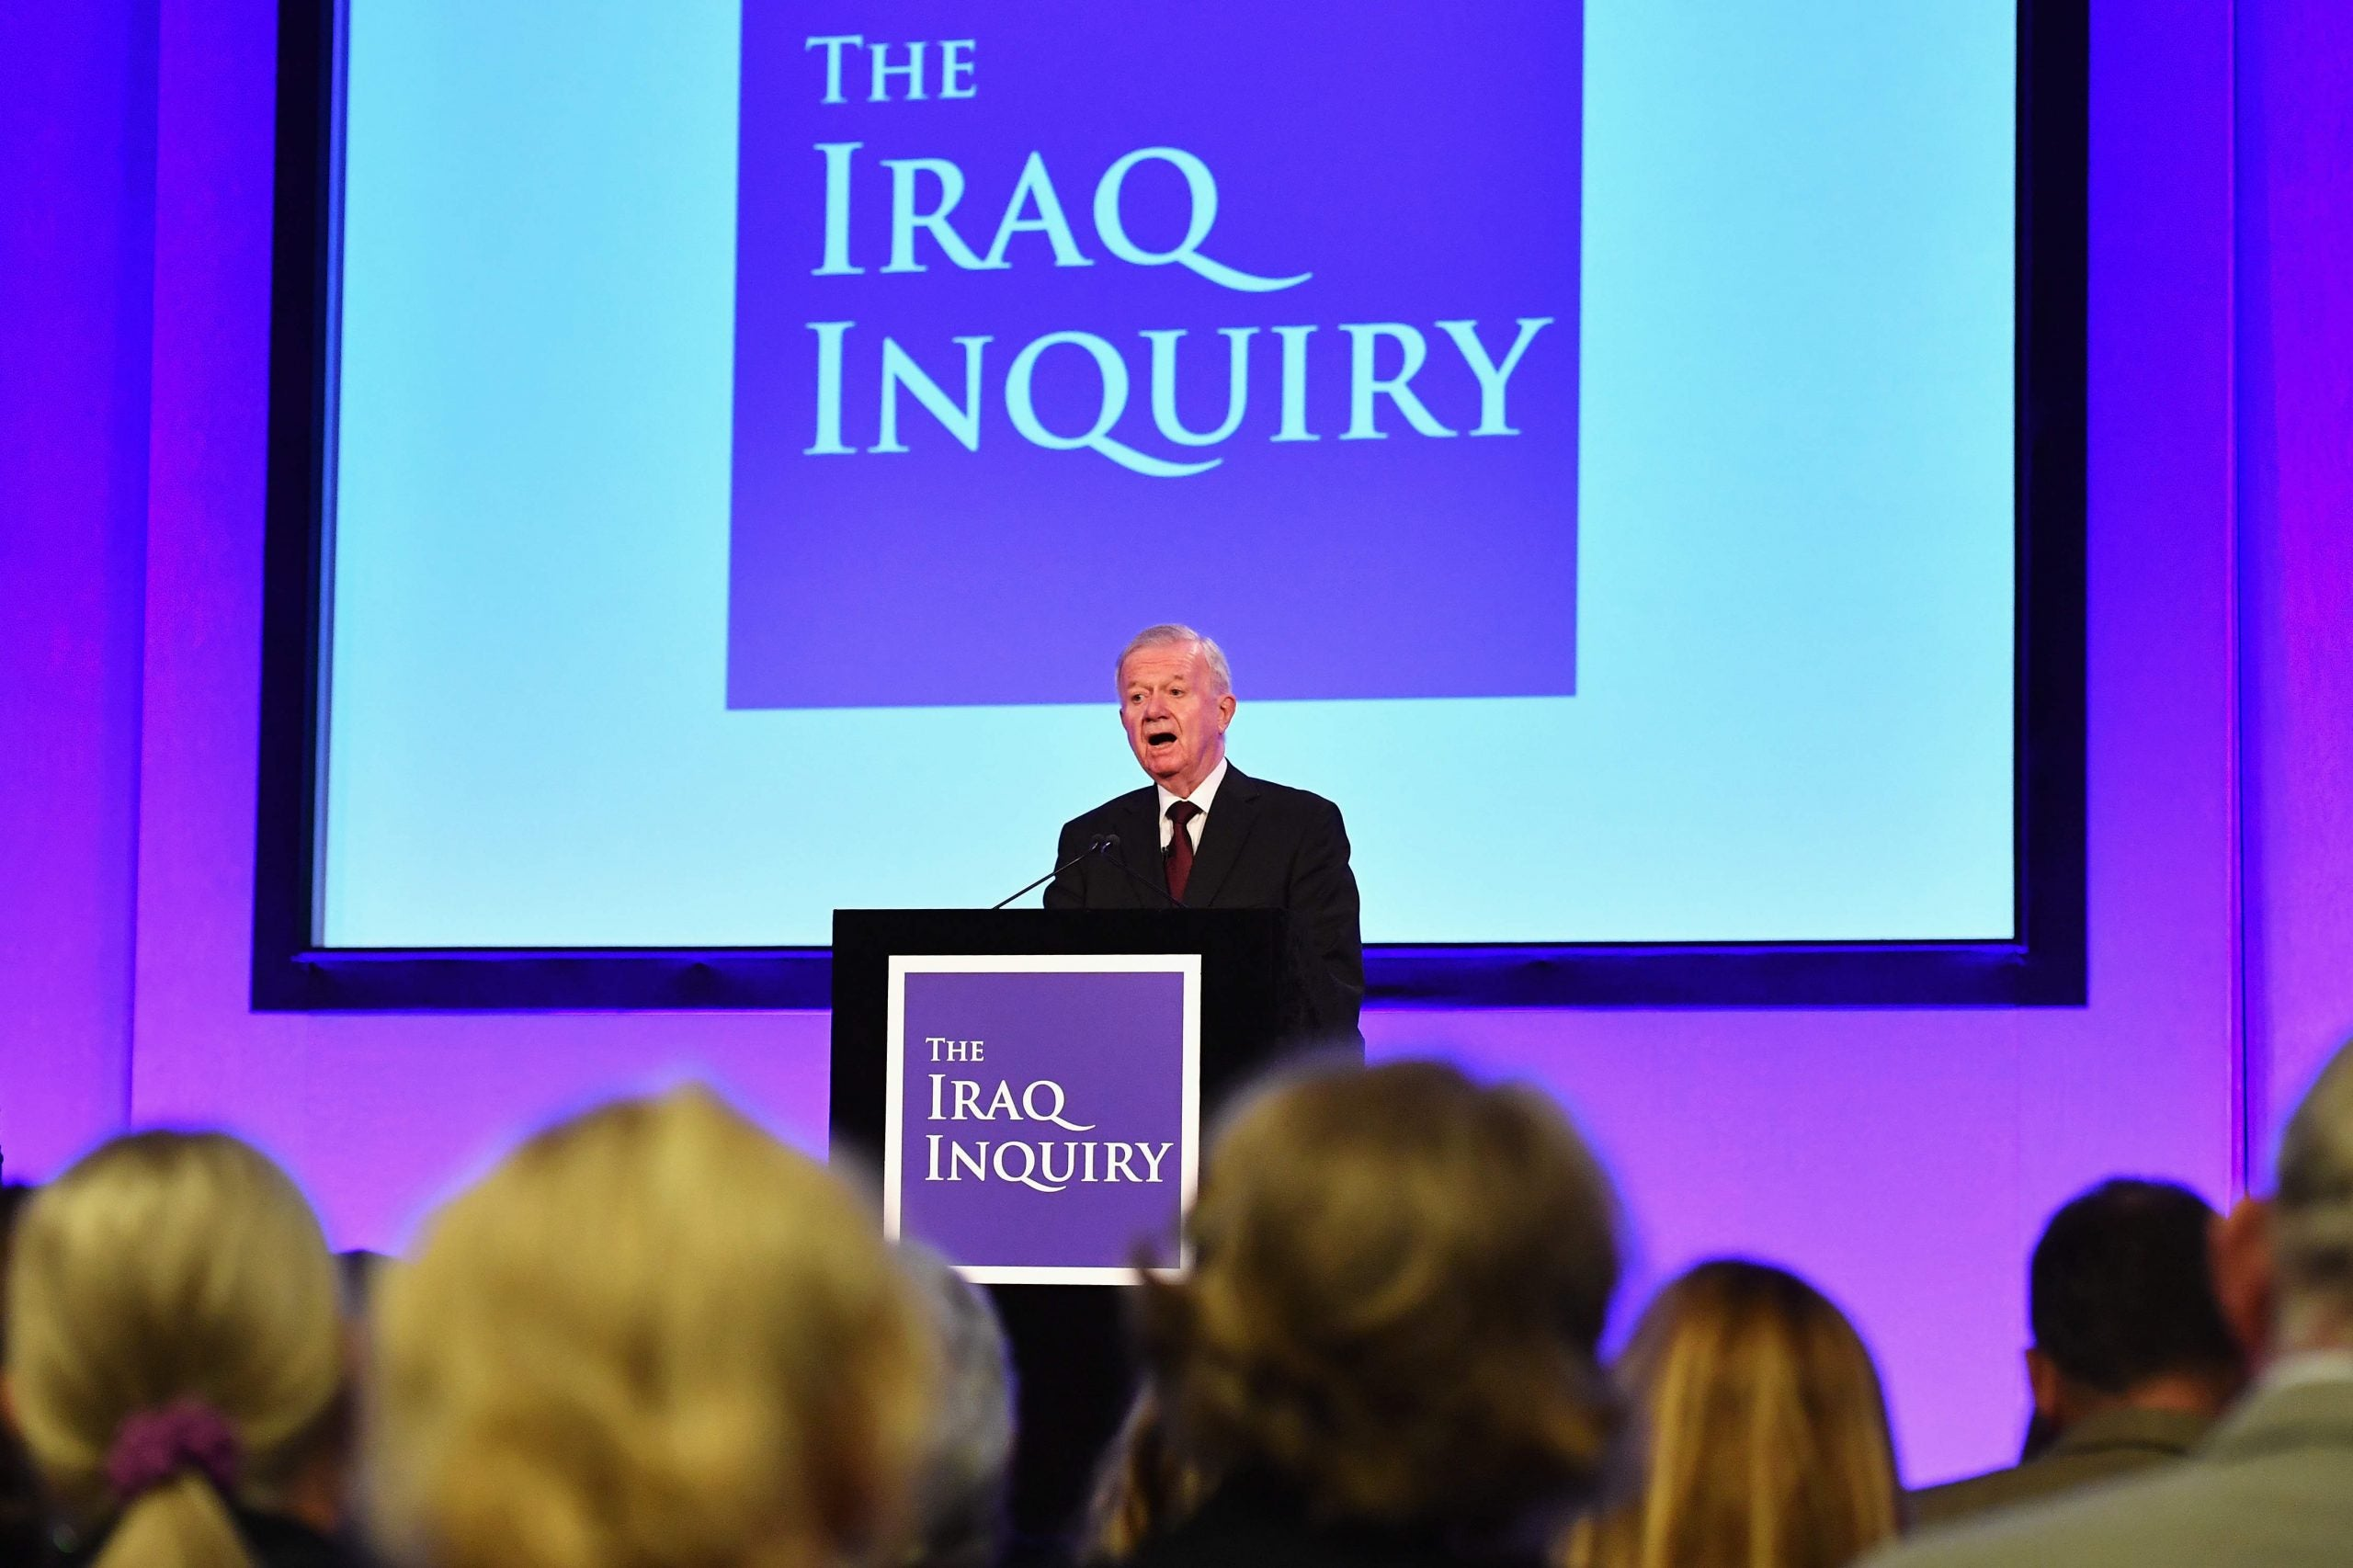 The Chilcot report left many questions concerning the UK's role in torture unanswered